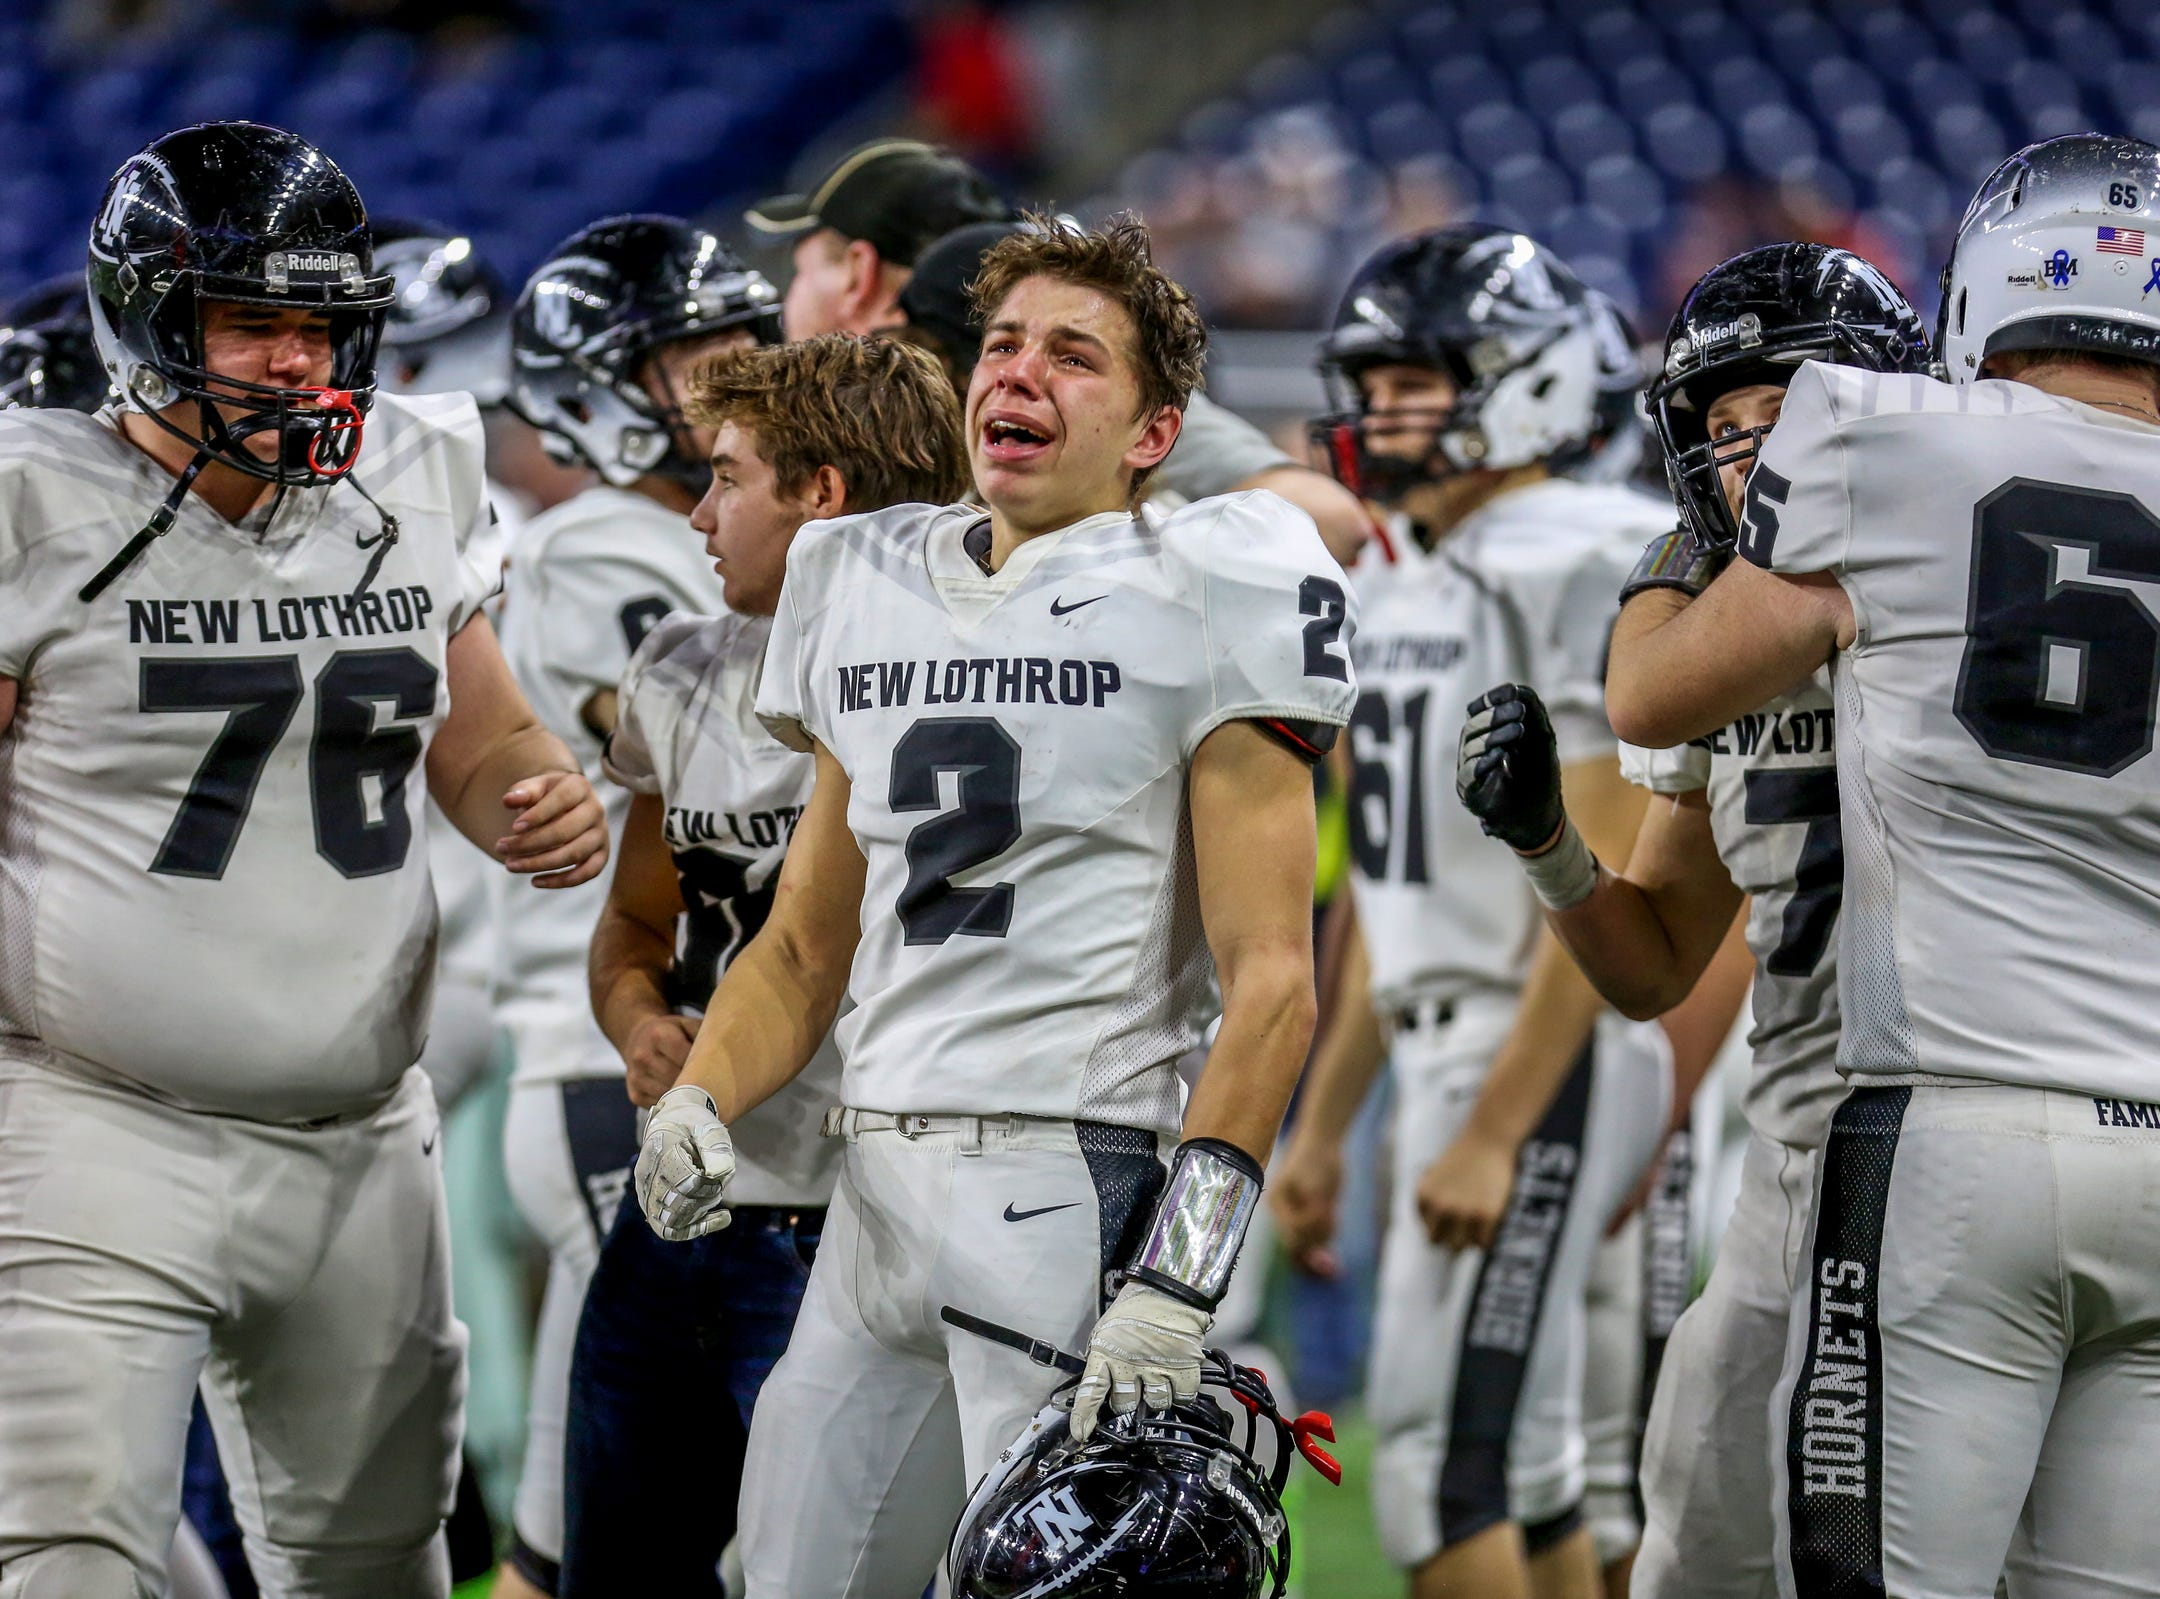 New Lothrop outlasts Madison Heights Madison to win Division 7 title